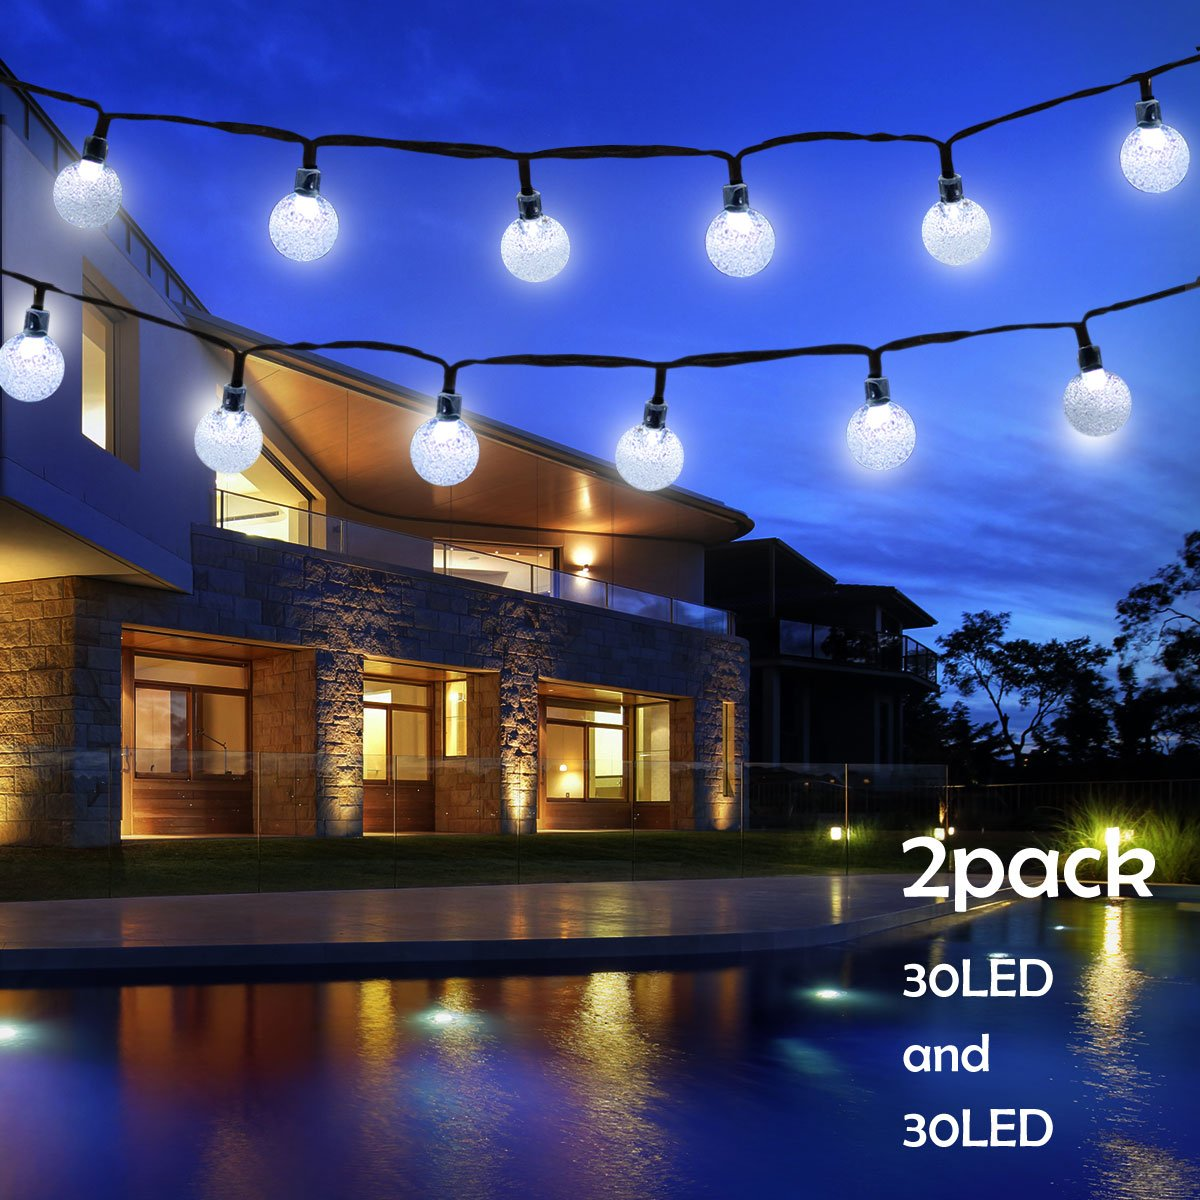 Lalapao Globe String Lights 2 Pack Solar Powered Outdoor Lights 30 LED 19.7ft Crystal Ball Fairy String Light for Christmas Xmas Tree Garden Path Patio Home Lawn Holiday Wedding Decor Party (White)